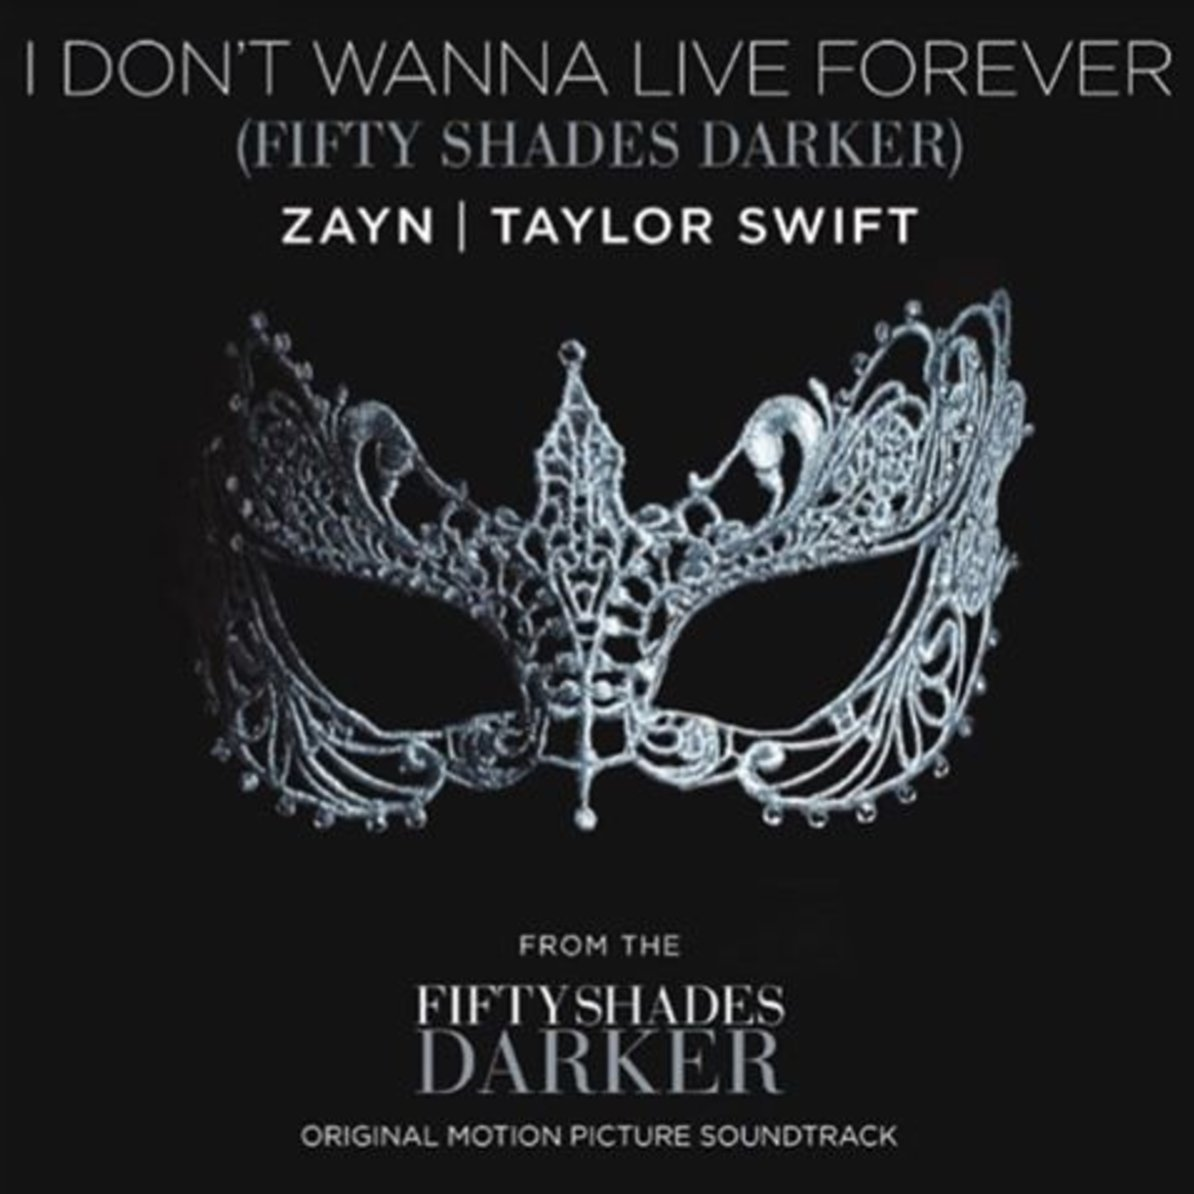 """ZAYN & Taylor Swift Release """"I Don't Wanna Live Forever"""" For """"Fifty Shades Darker"""" Soundtrack"""